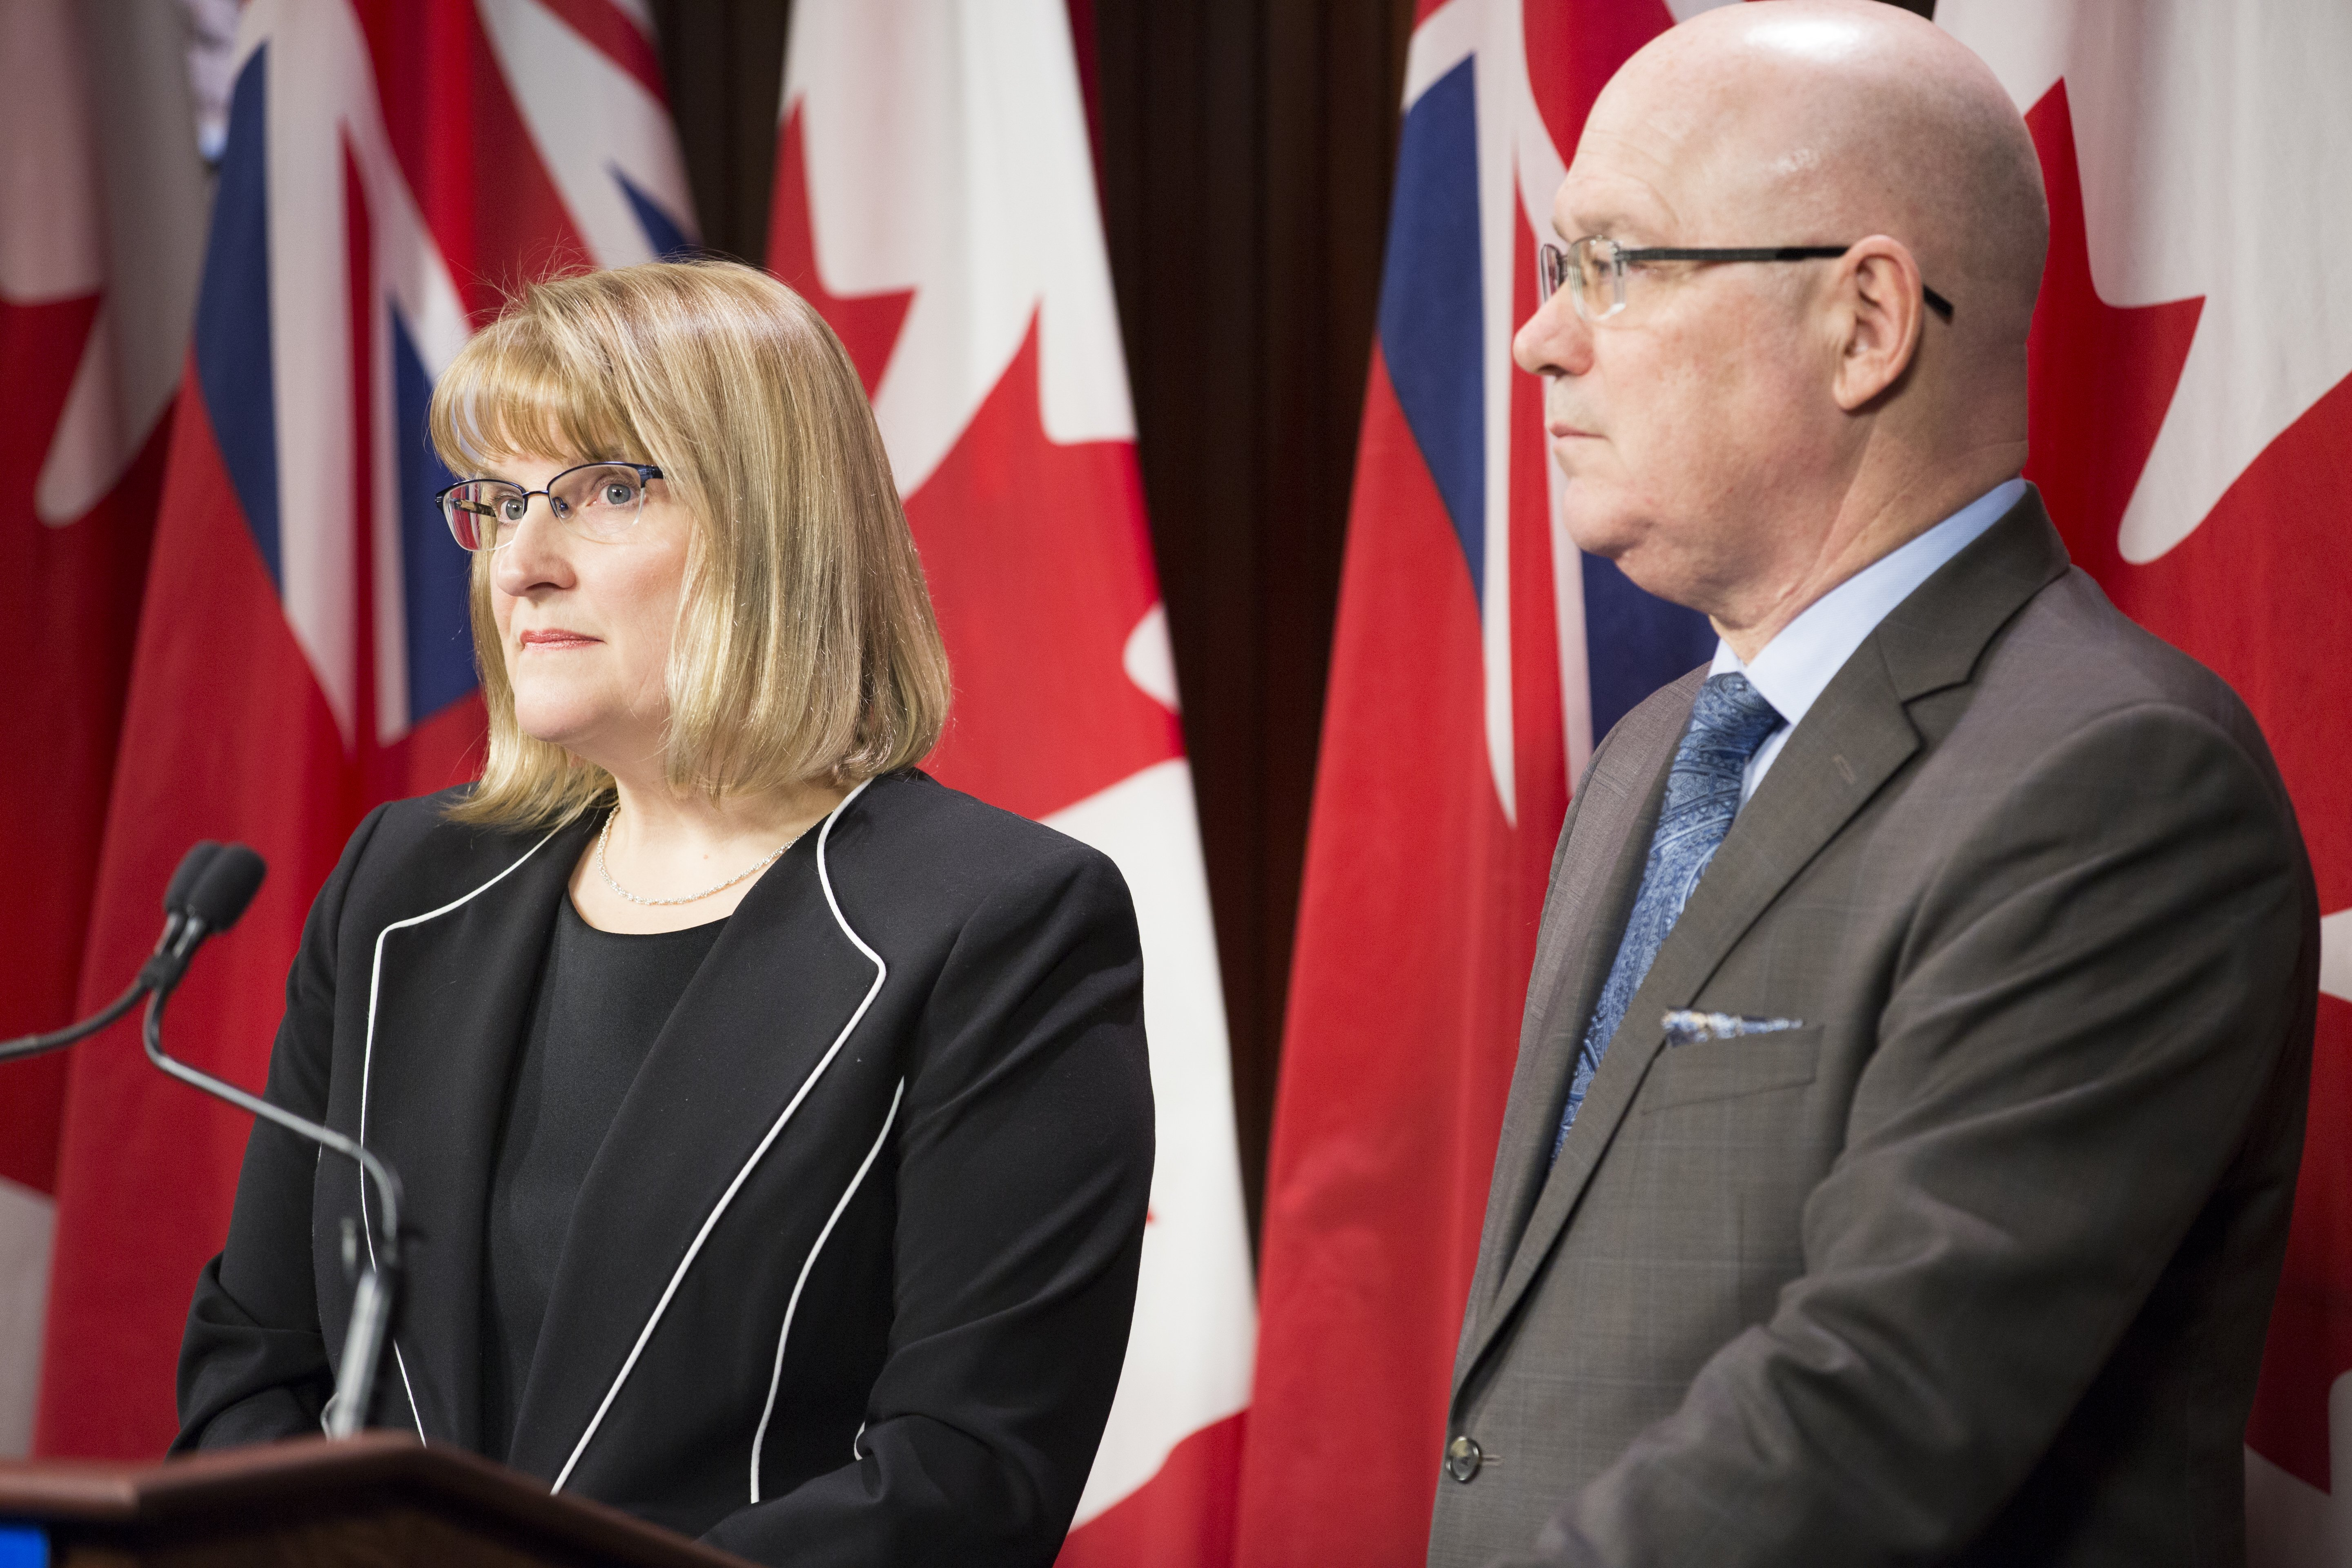 Ford government appears to have no plans to host mandatory anti-racism conference